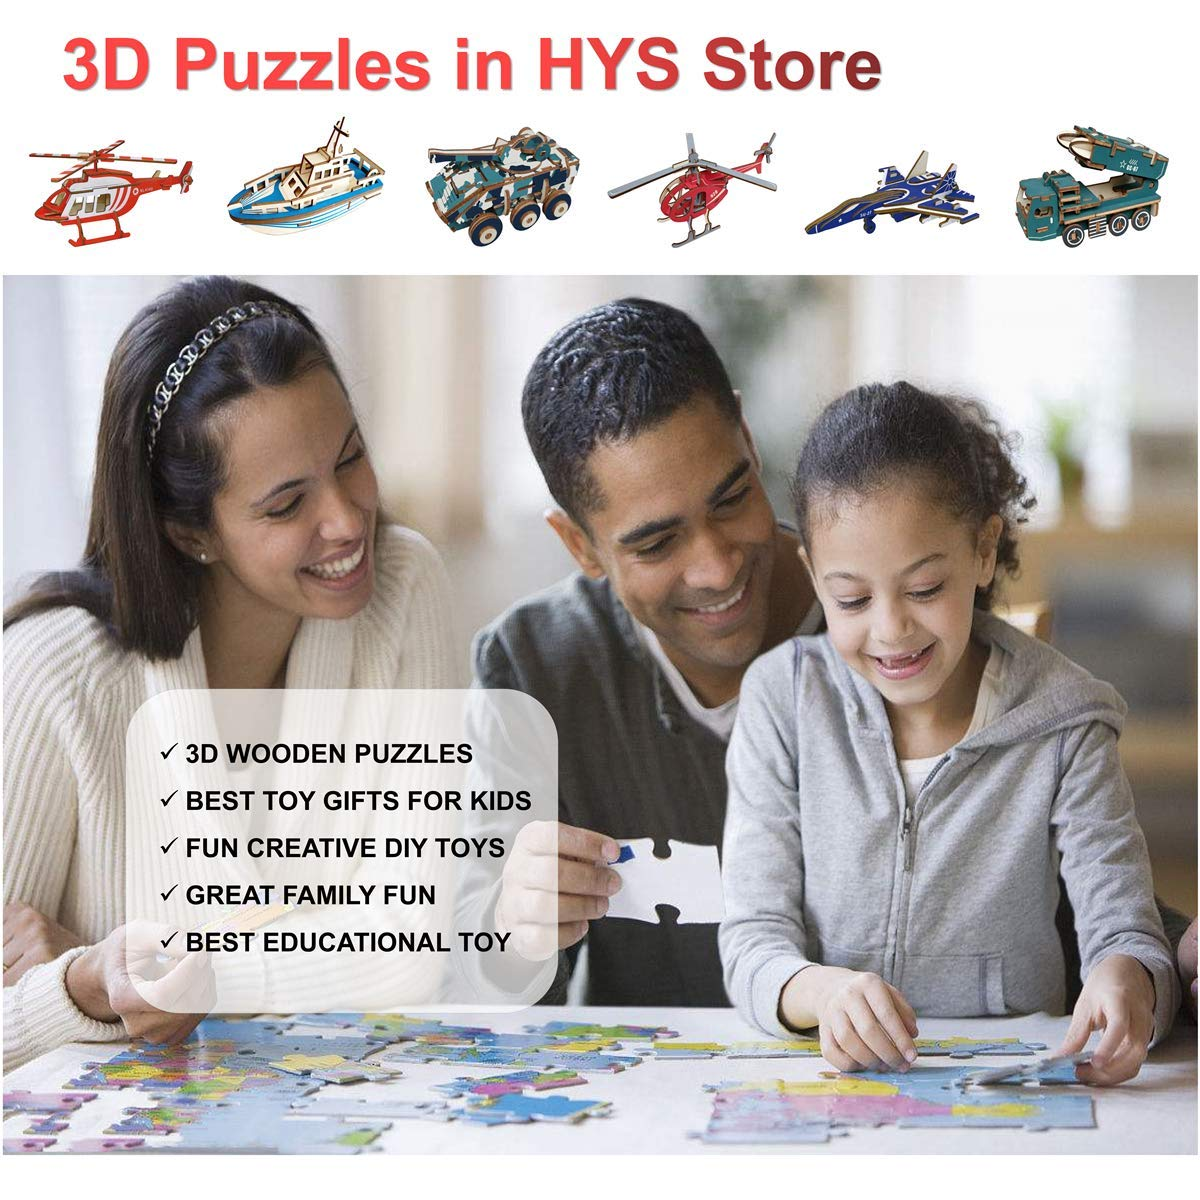 Creative DIY Crafts Kit Toy for 8-10 Year Olds Boy HYS Educational Art 3D Puzzle Set for Kids Best Toy Gift for Girls and Boys Age 8 9 10 11 12 Year Old